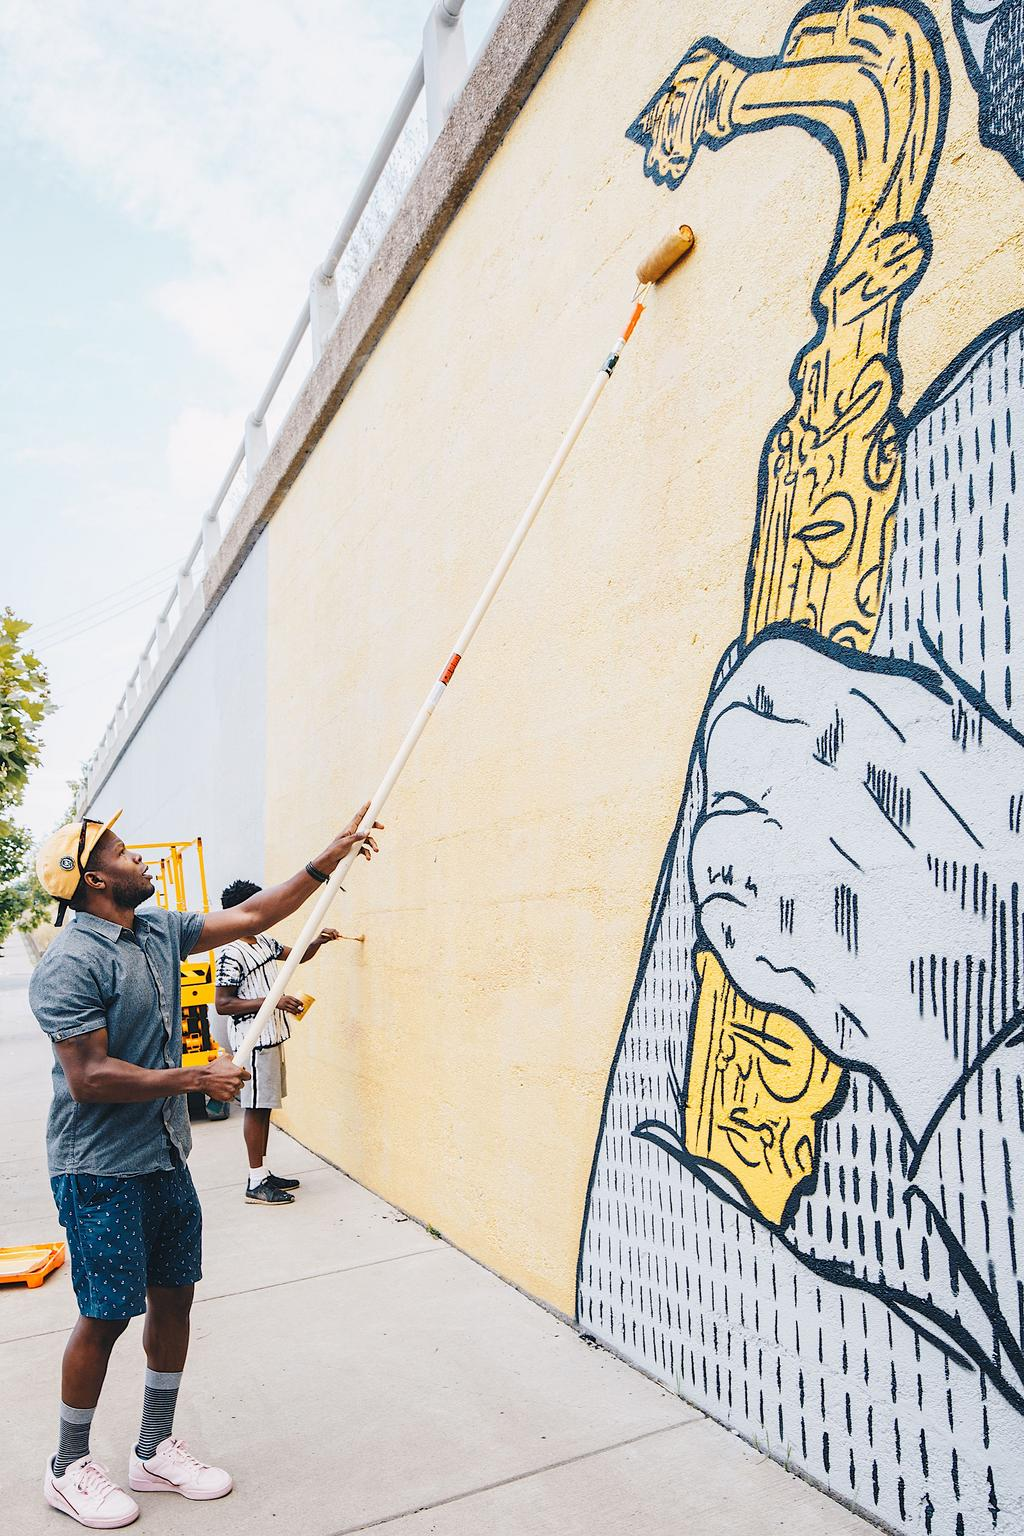 A complete guide to street art in Allentown